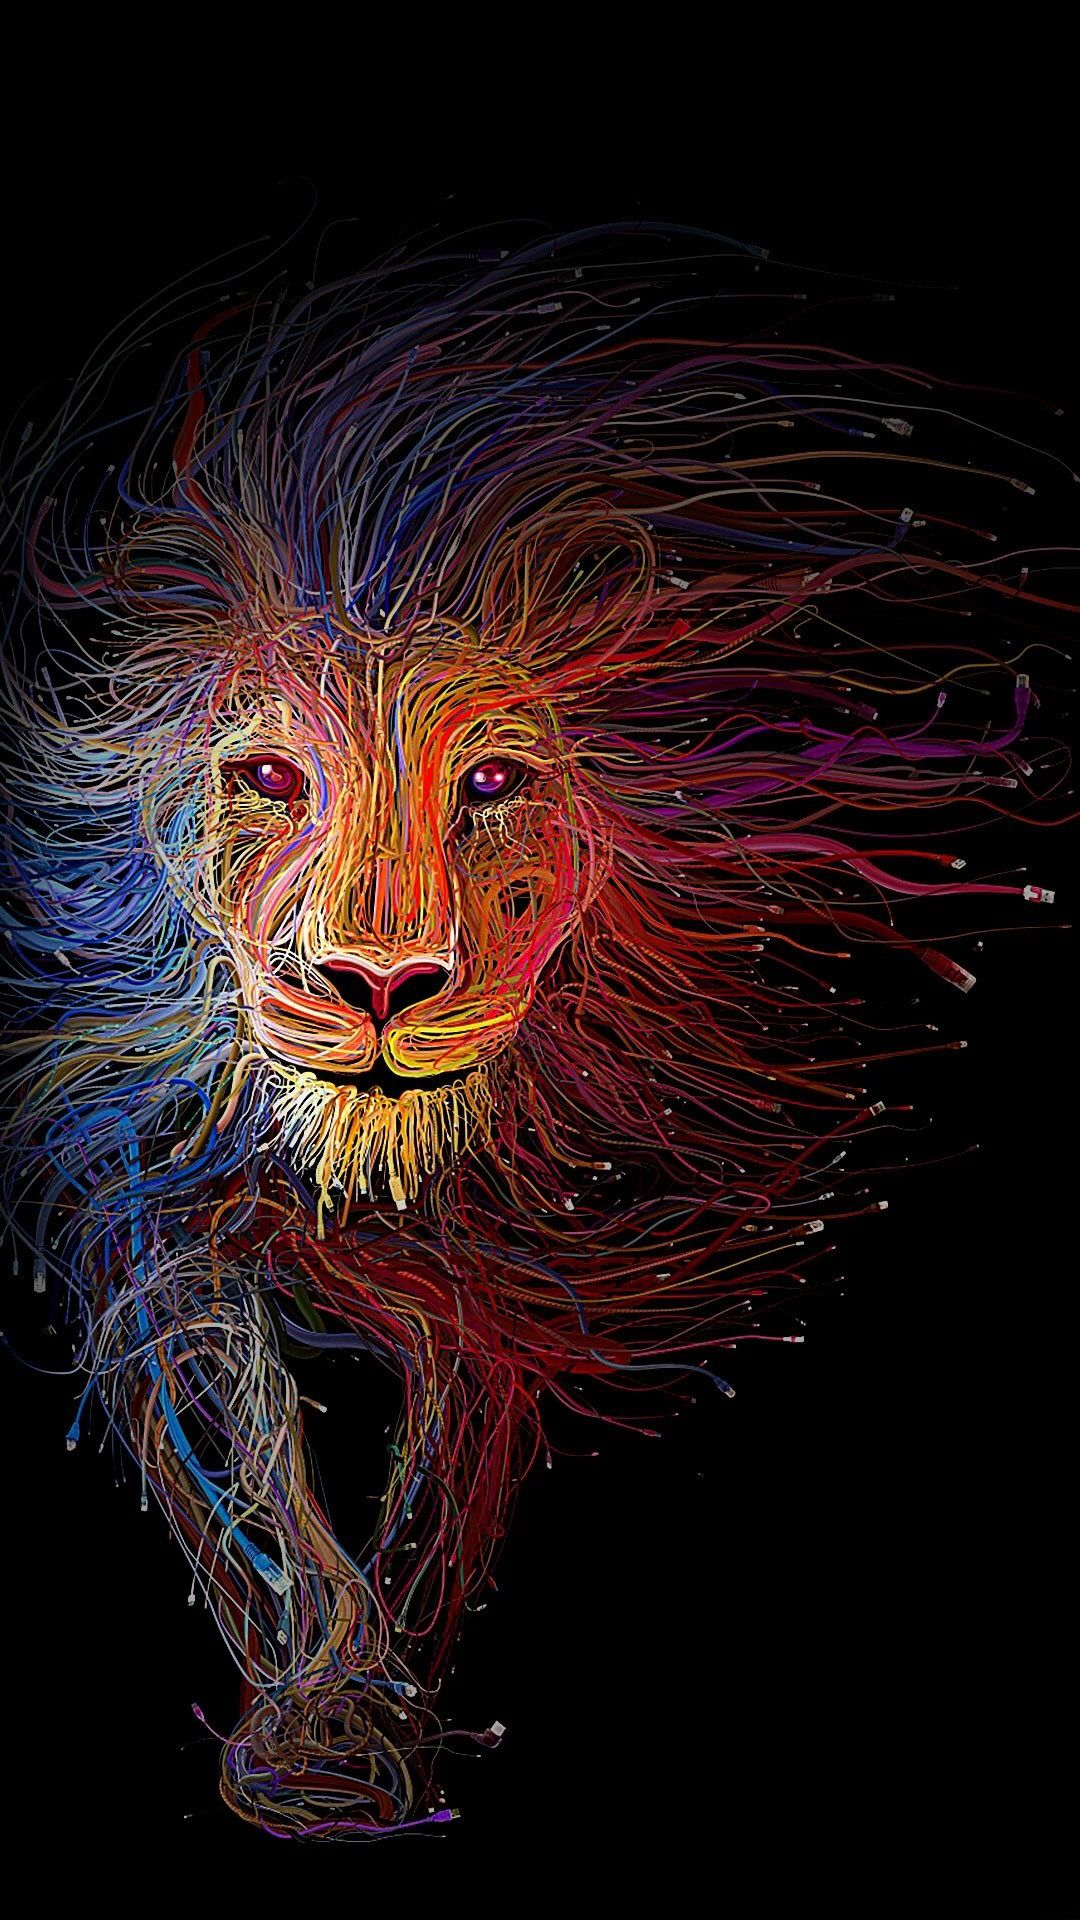 Iphone Lion Art Internet Utp Cables Color Black Wallpaper